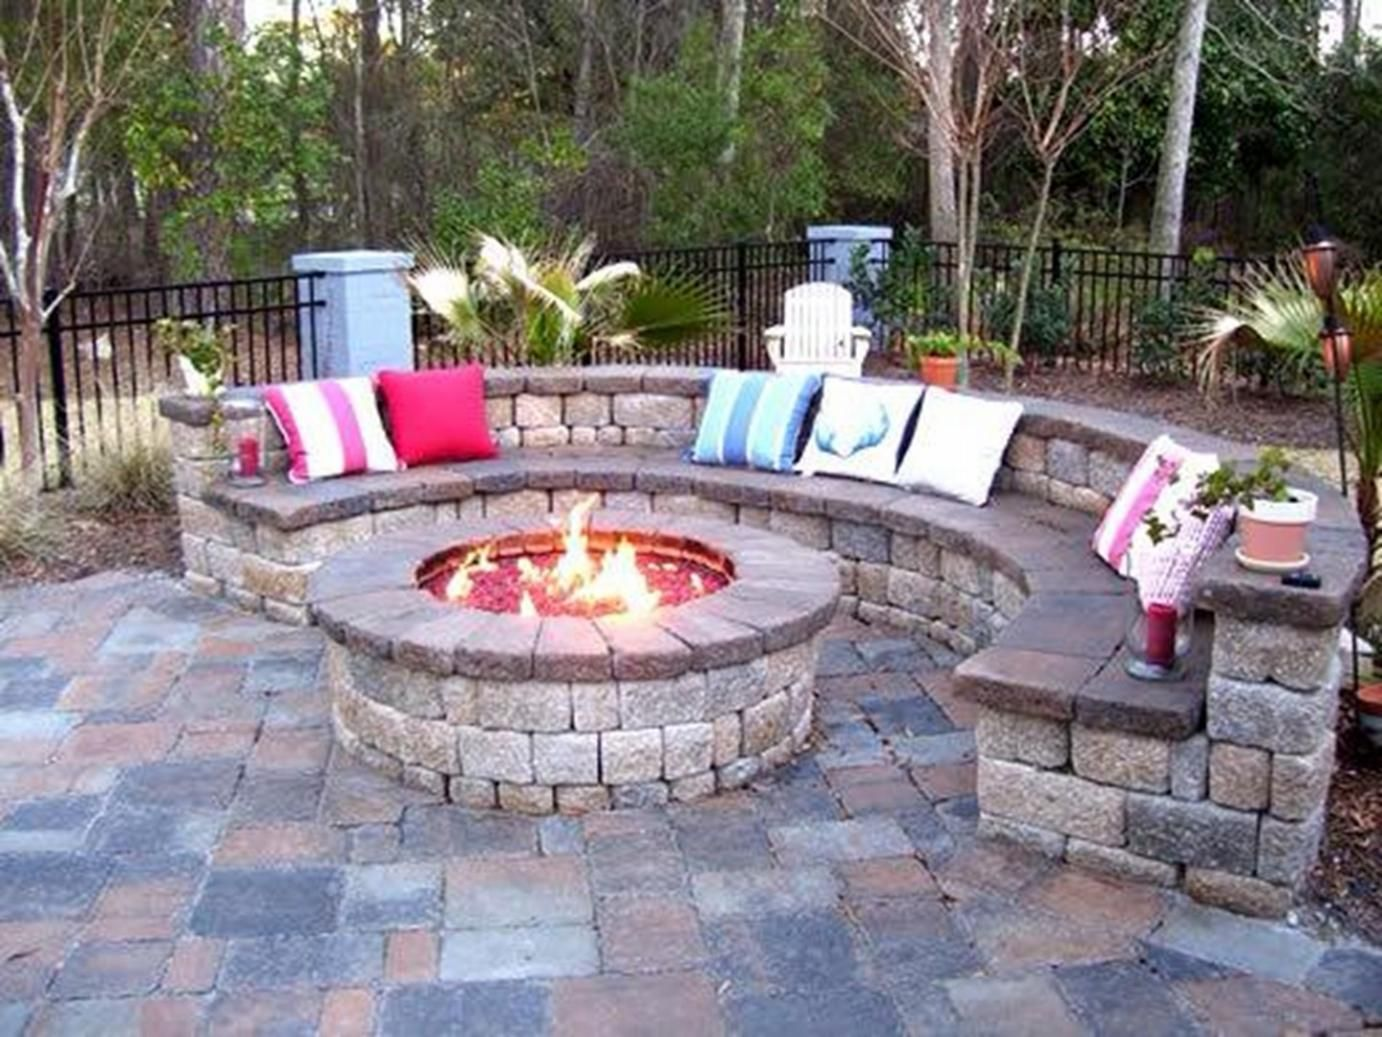 good backyard patio rustic house design with round diy brick fire pit and stone bench seat - Patio Design Ideas With Fire Pits